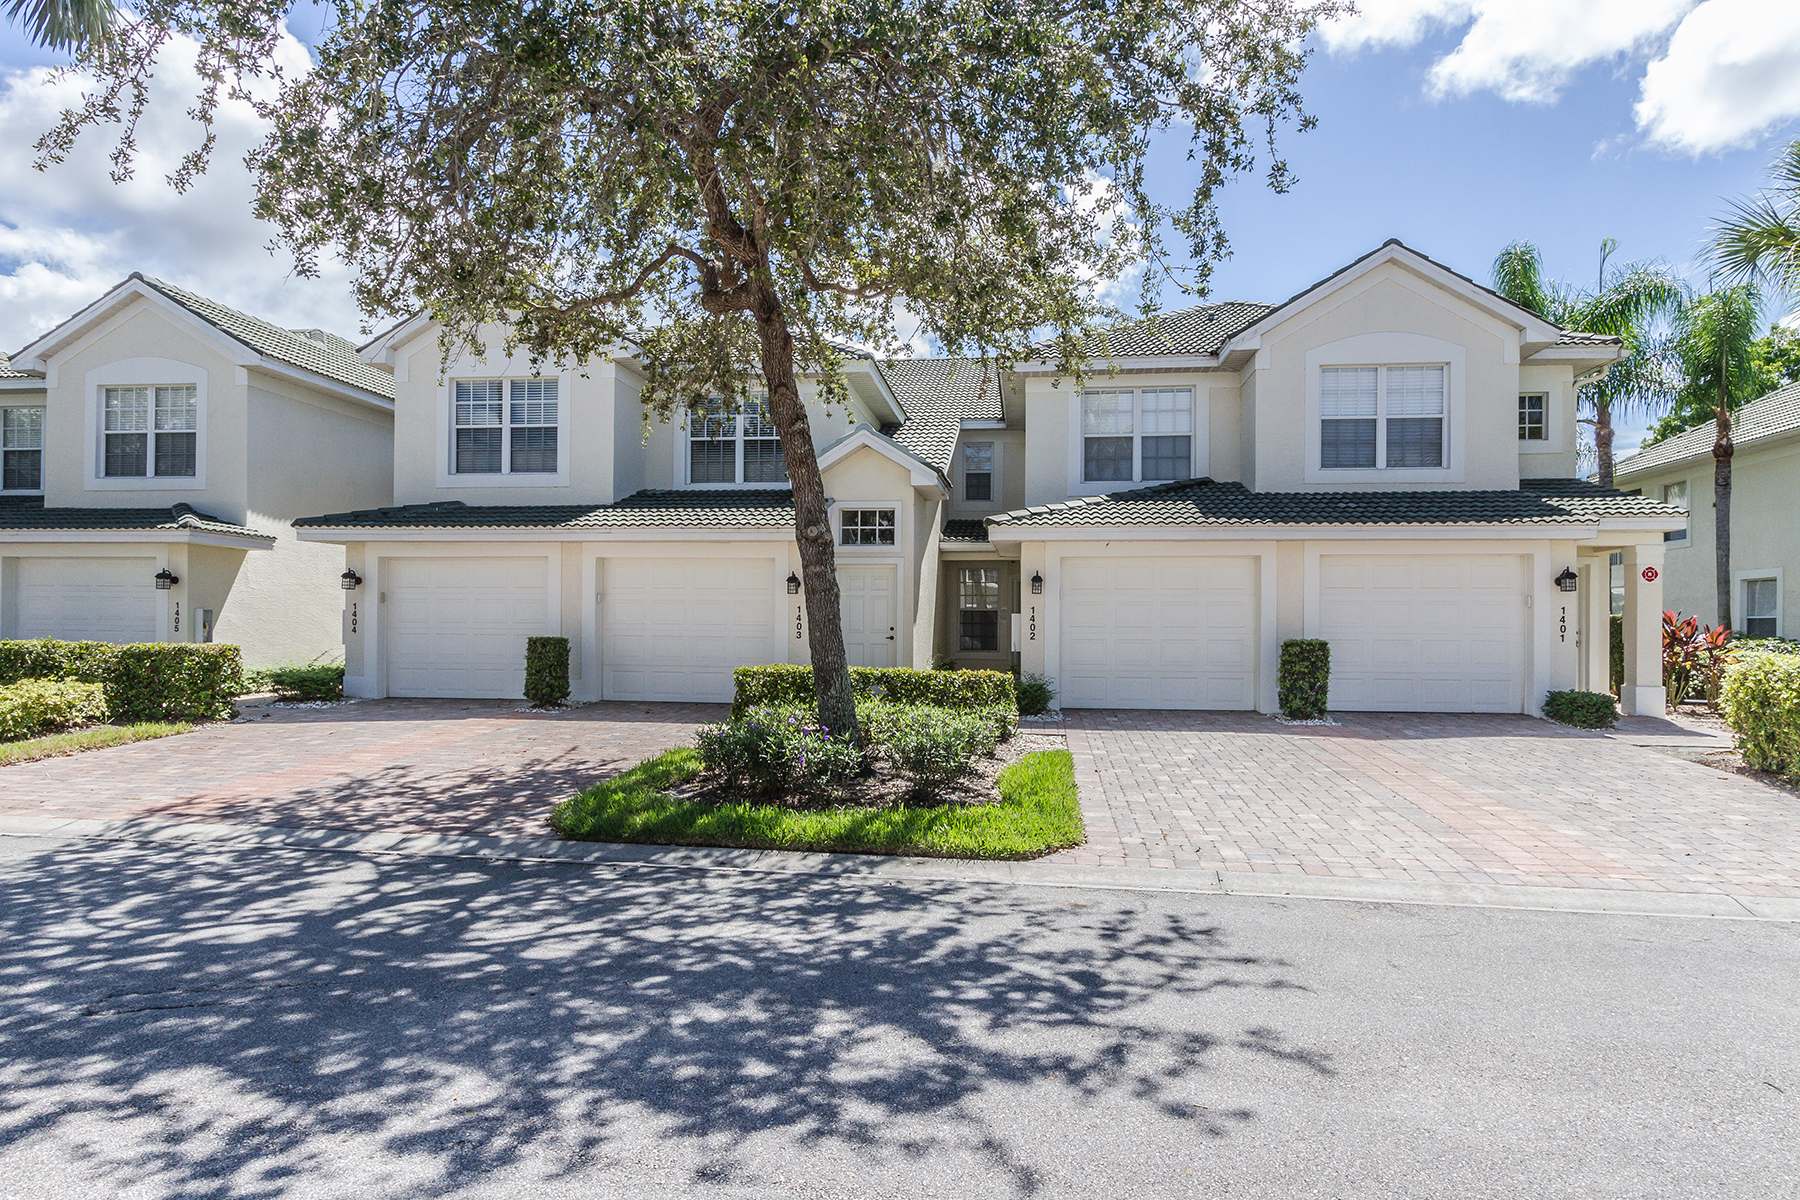 Condominium for Rent at SPRING RUN - HIDDEN LAKES 23770 Clear Spring Ct 1402, Estero, Florida 34135 United States